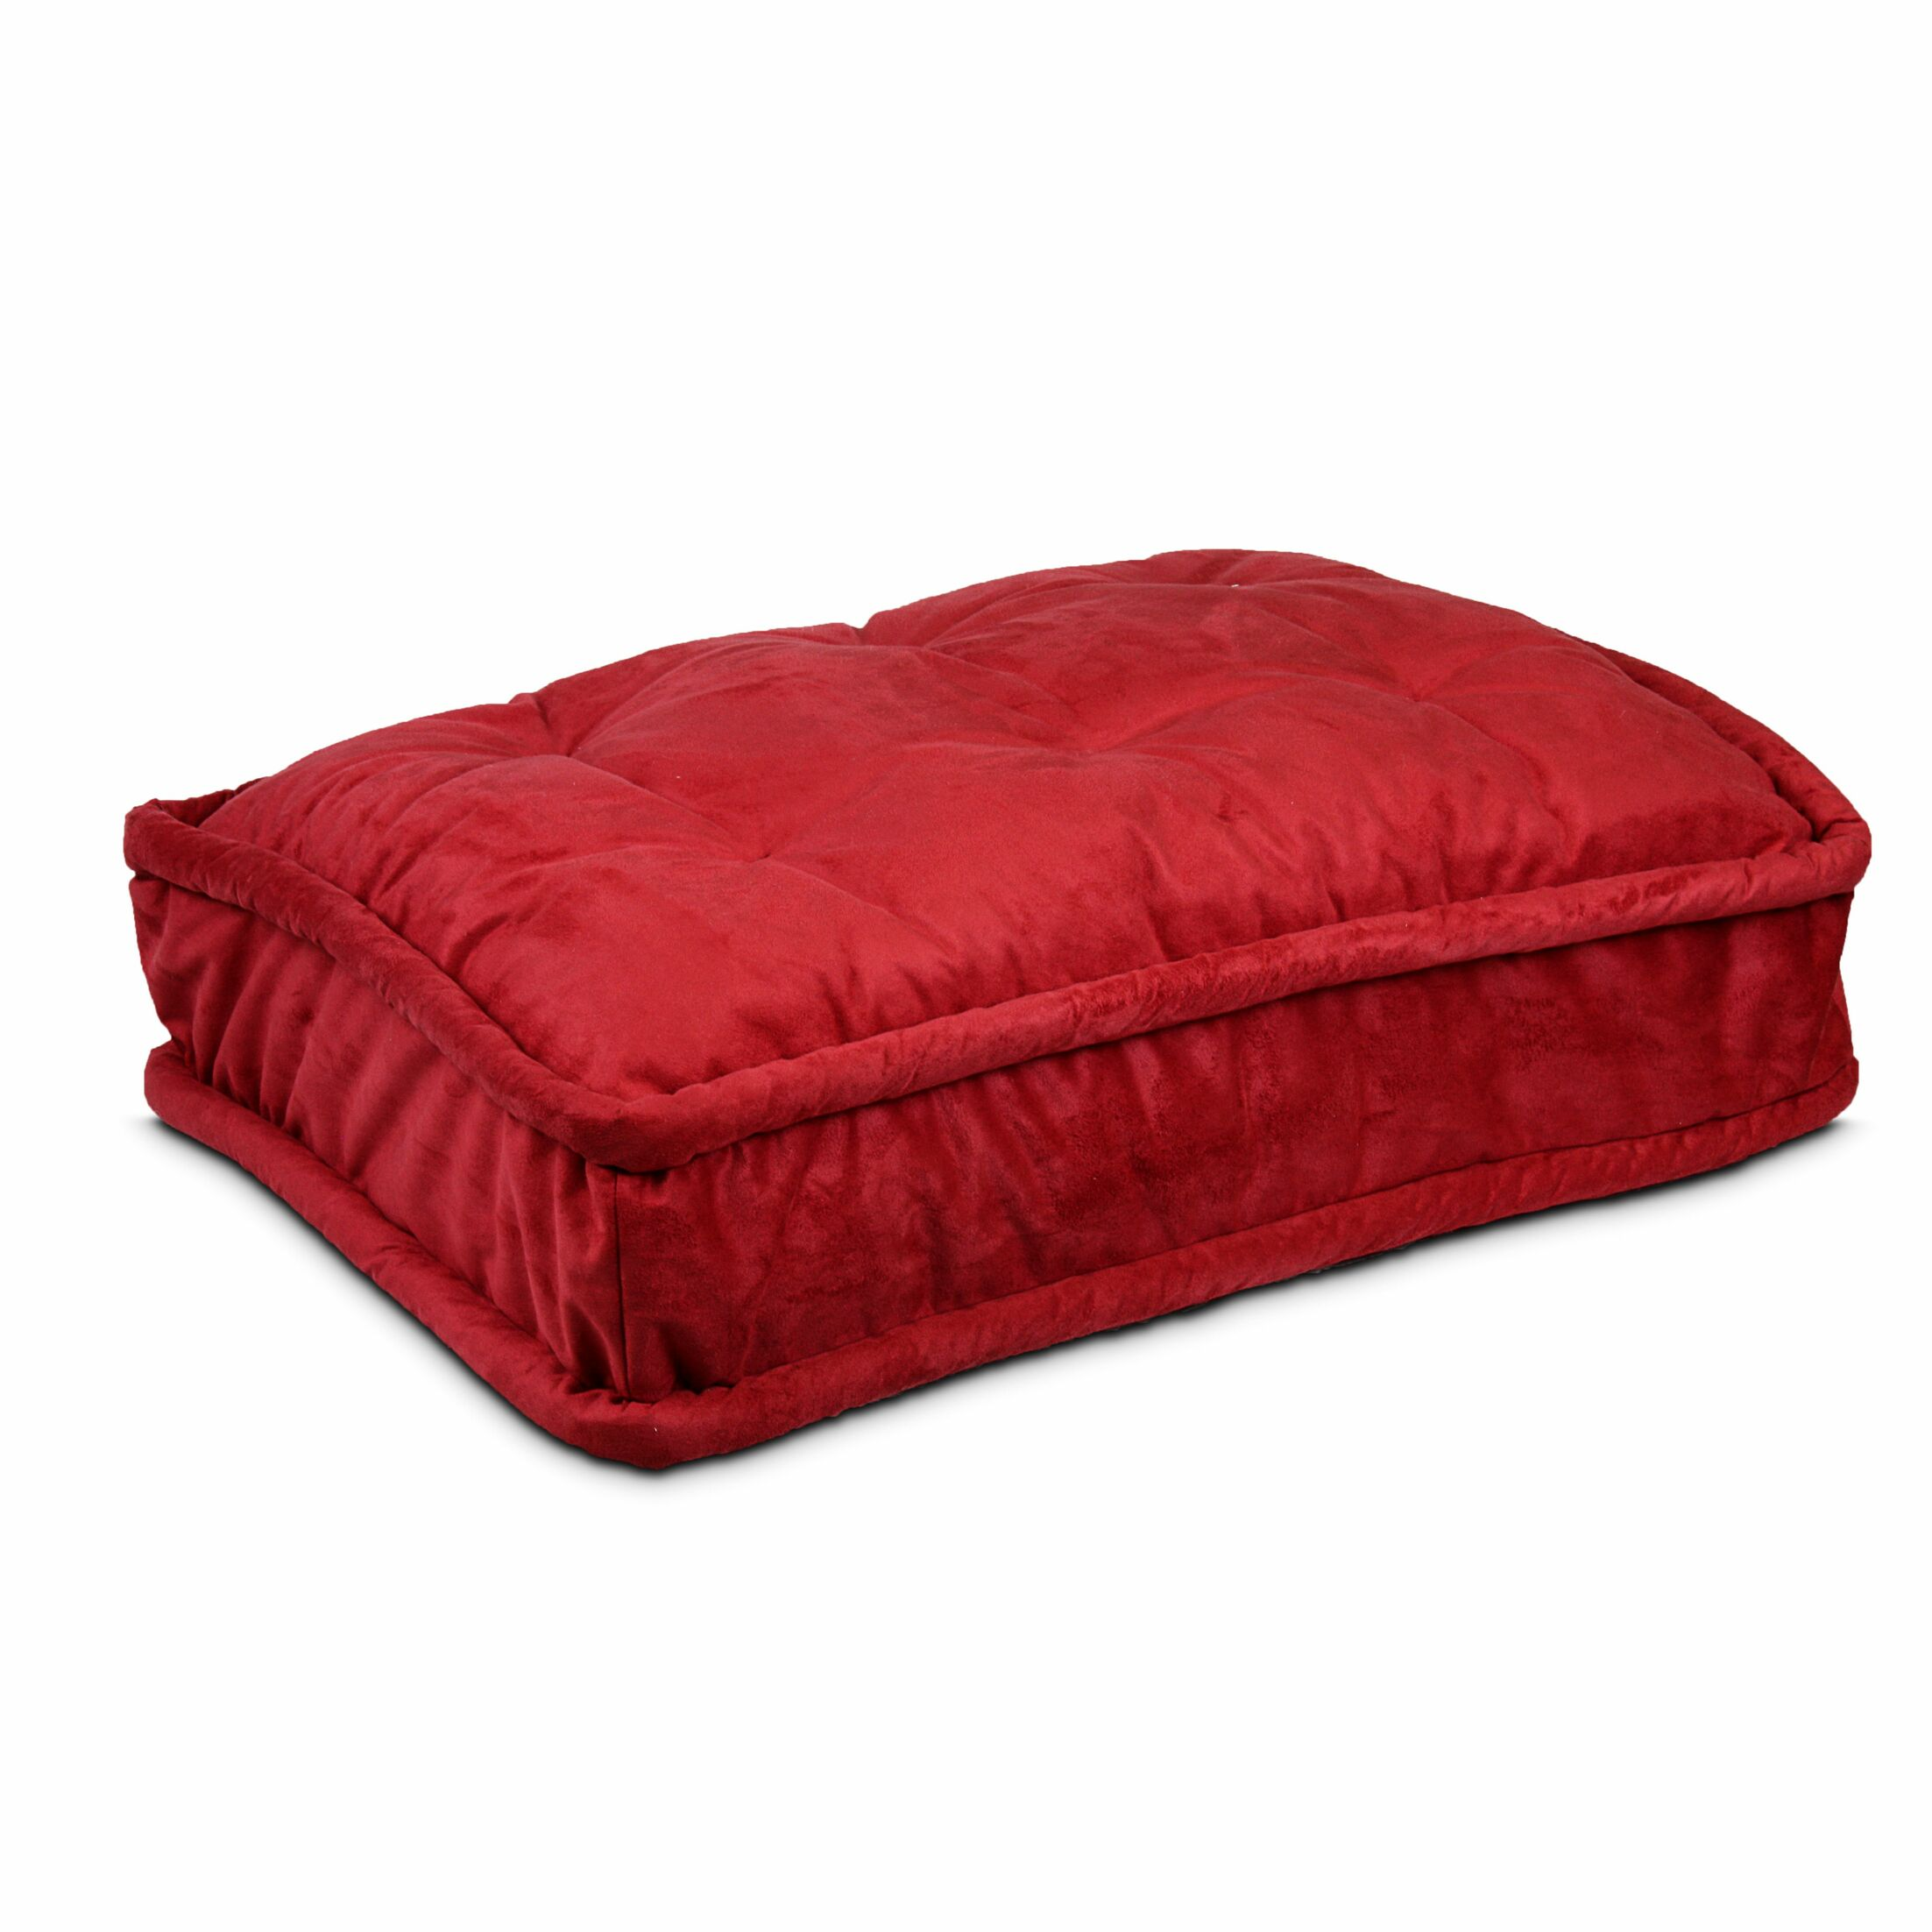 Luxury Pillow Top Pet Bed Color: Red, Size: Medium -  30